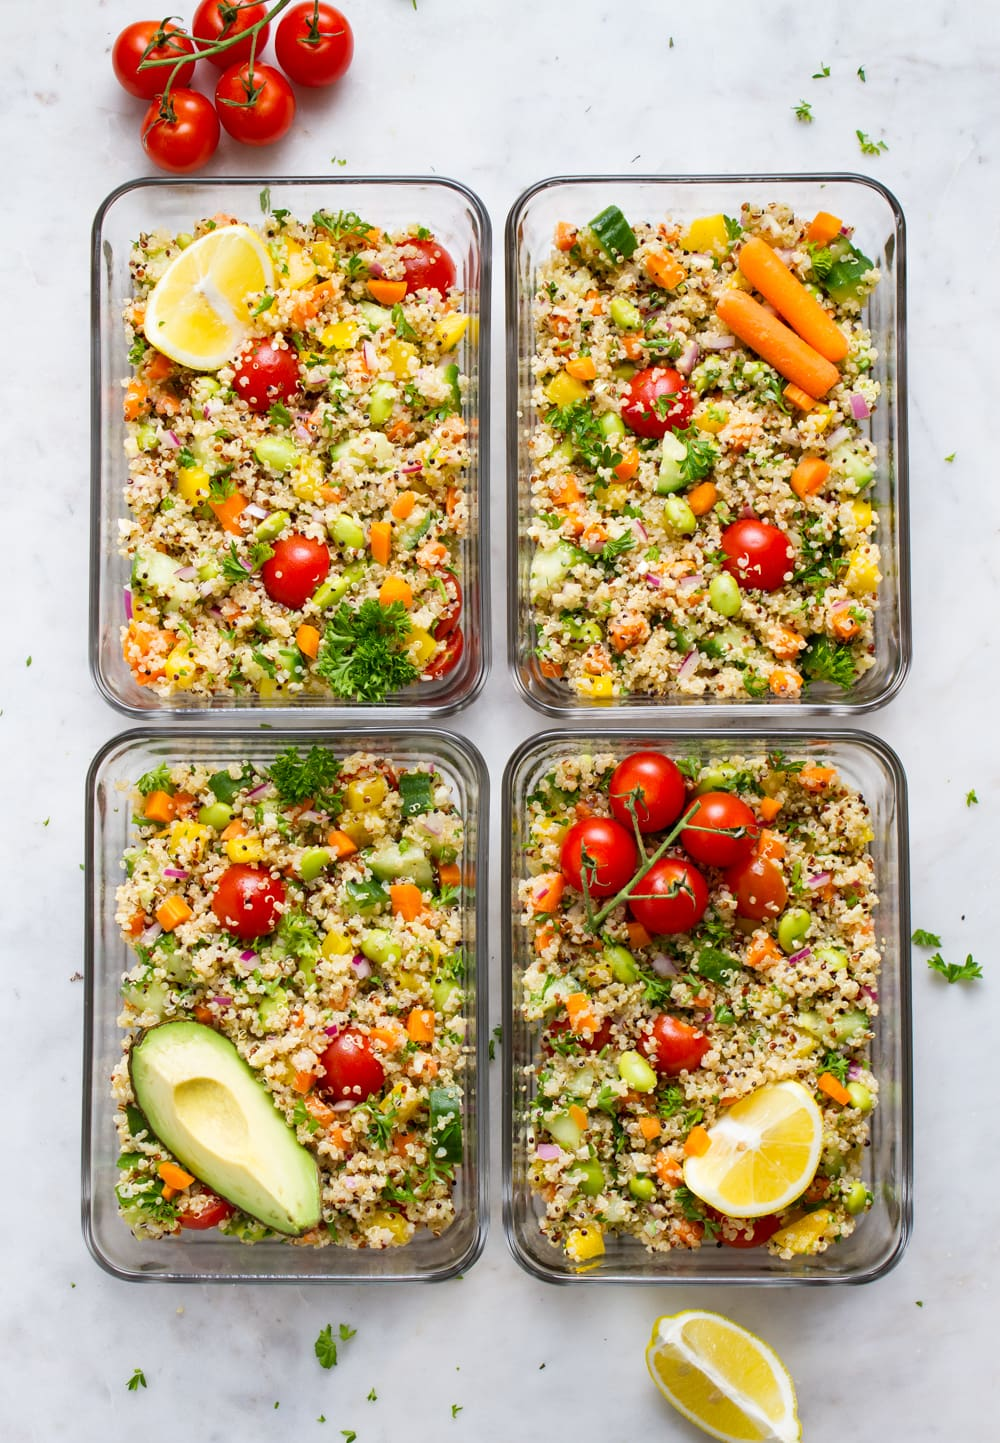 top down view of meal prepping quinoa salad in 4 rectangular glass containers.